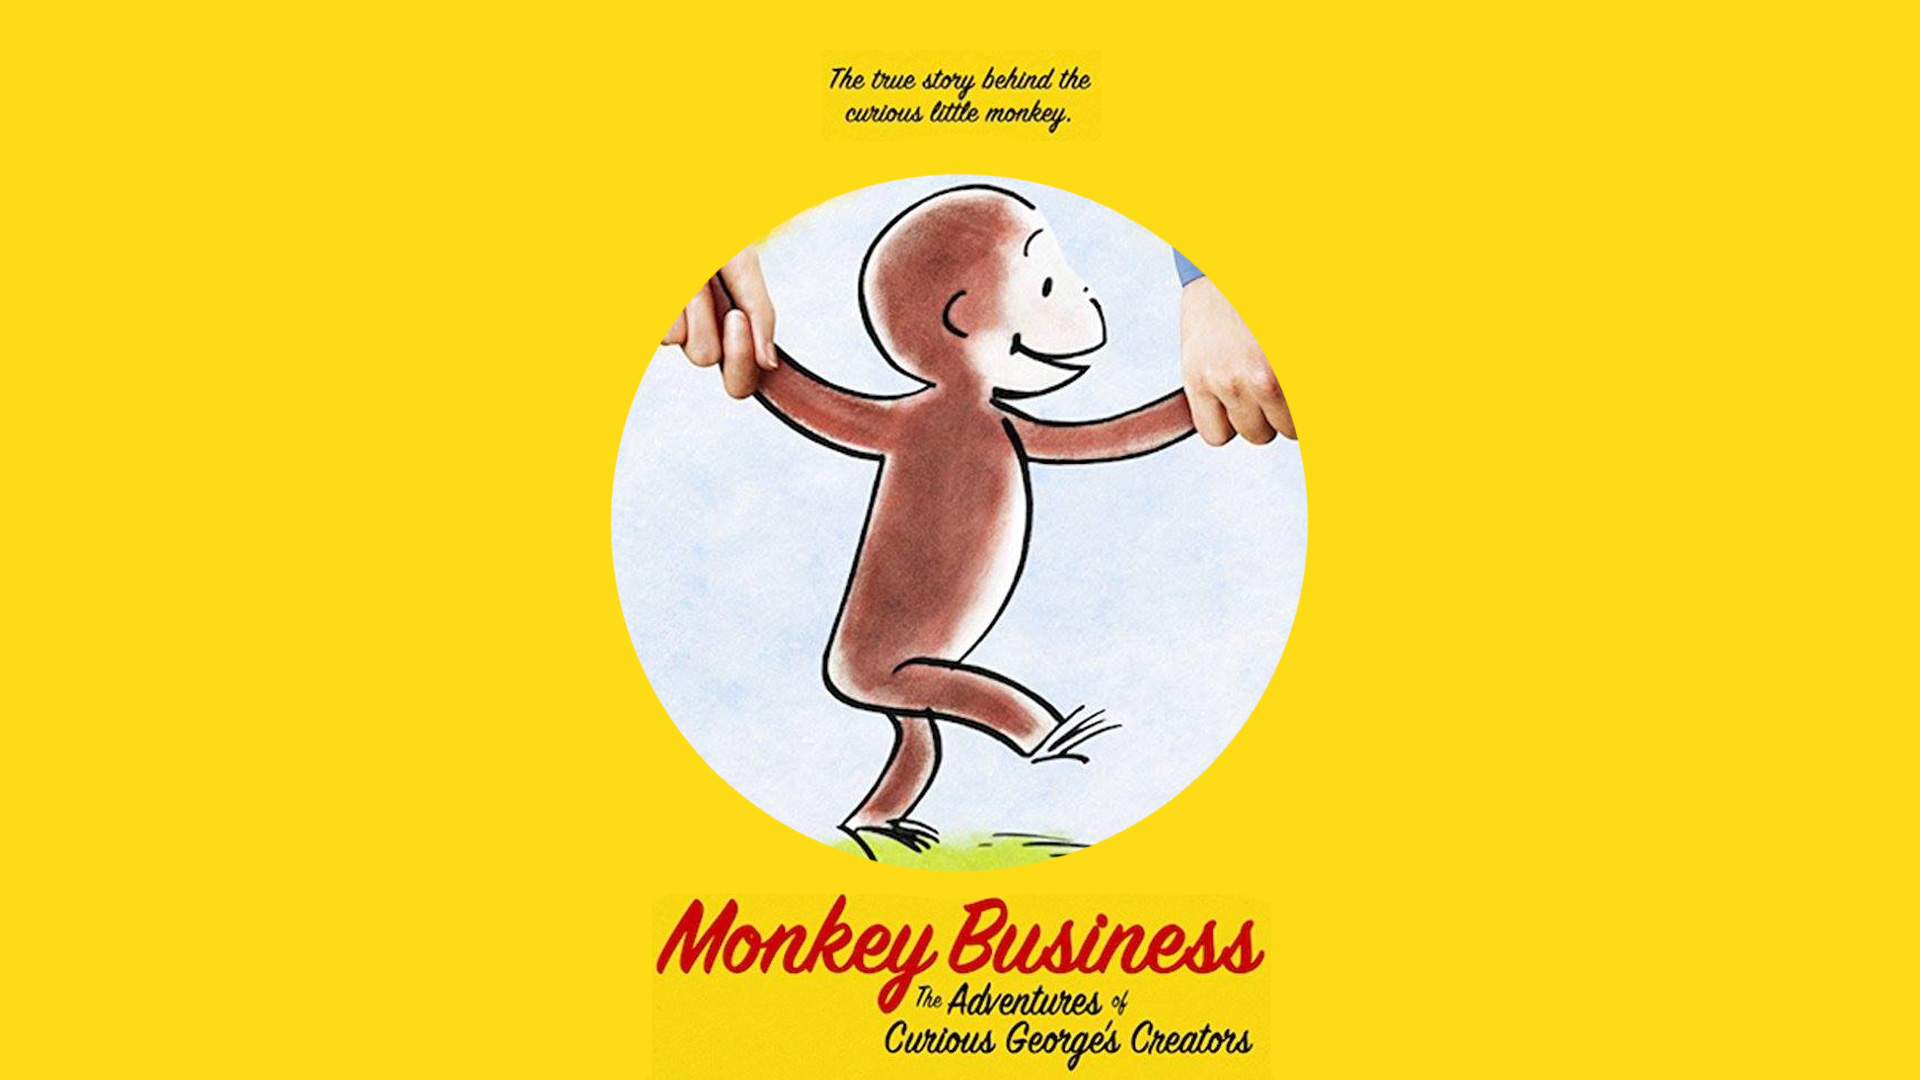 monkey business hero